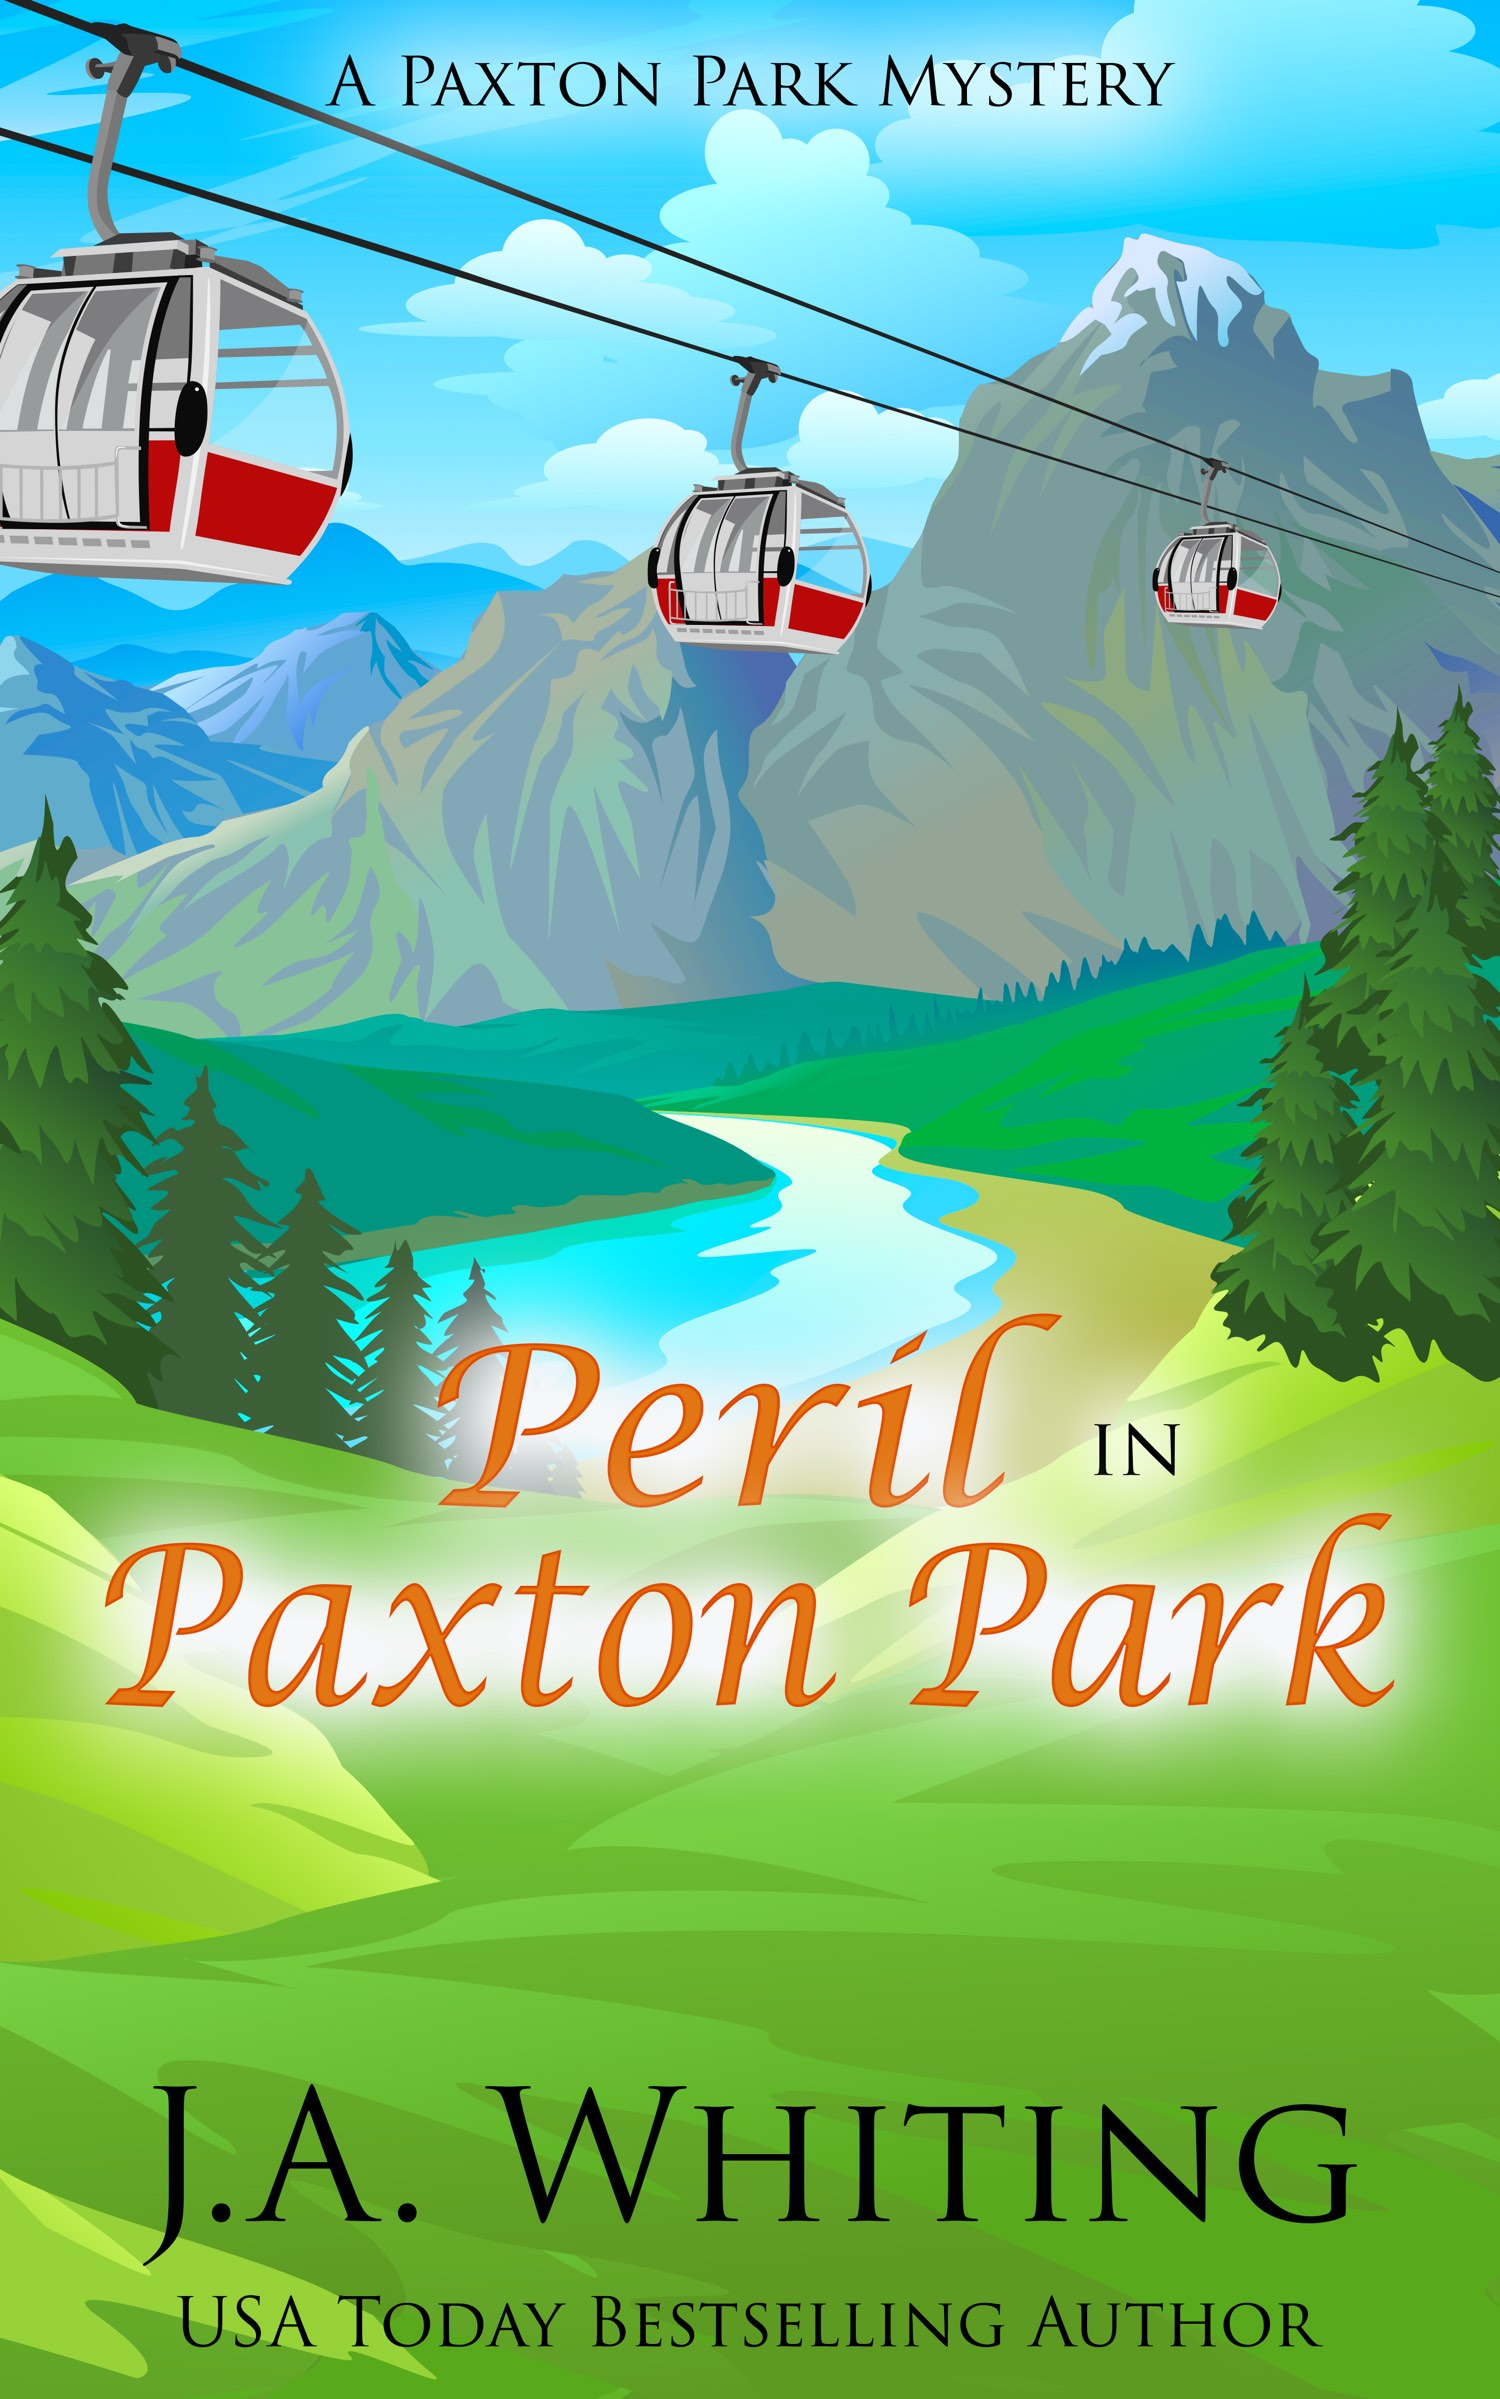 jawhiting-peril-in-paxton-park.jpg